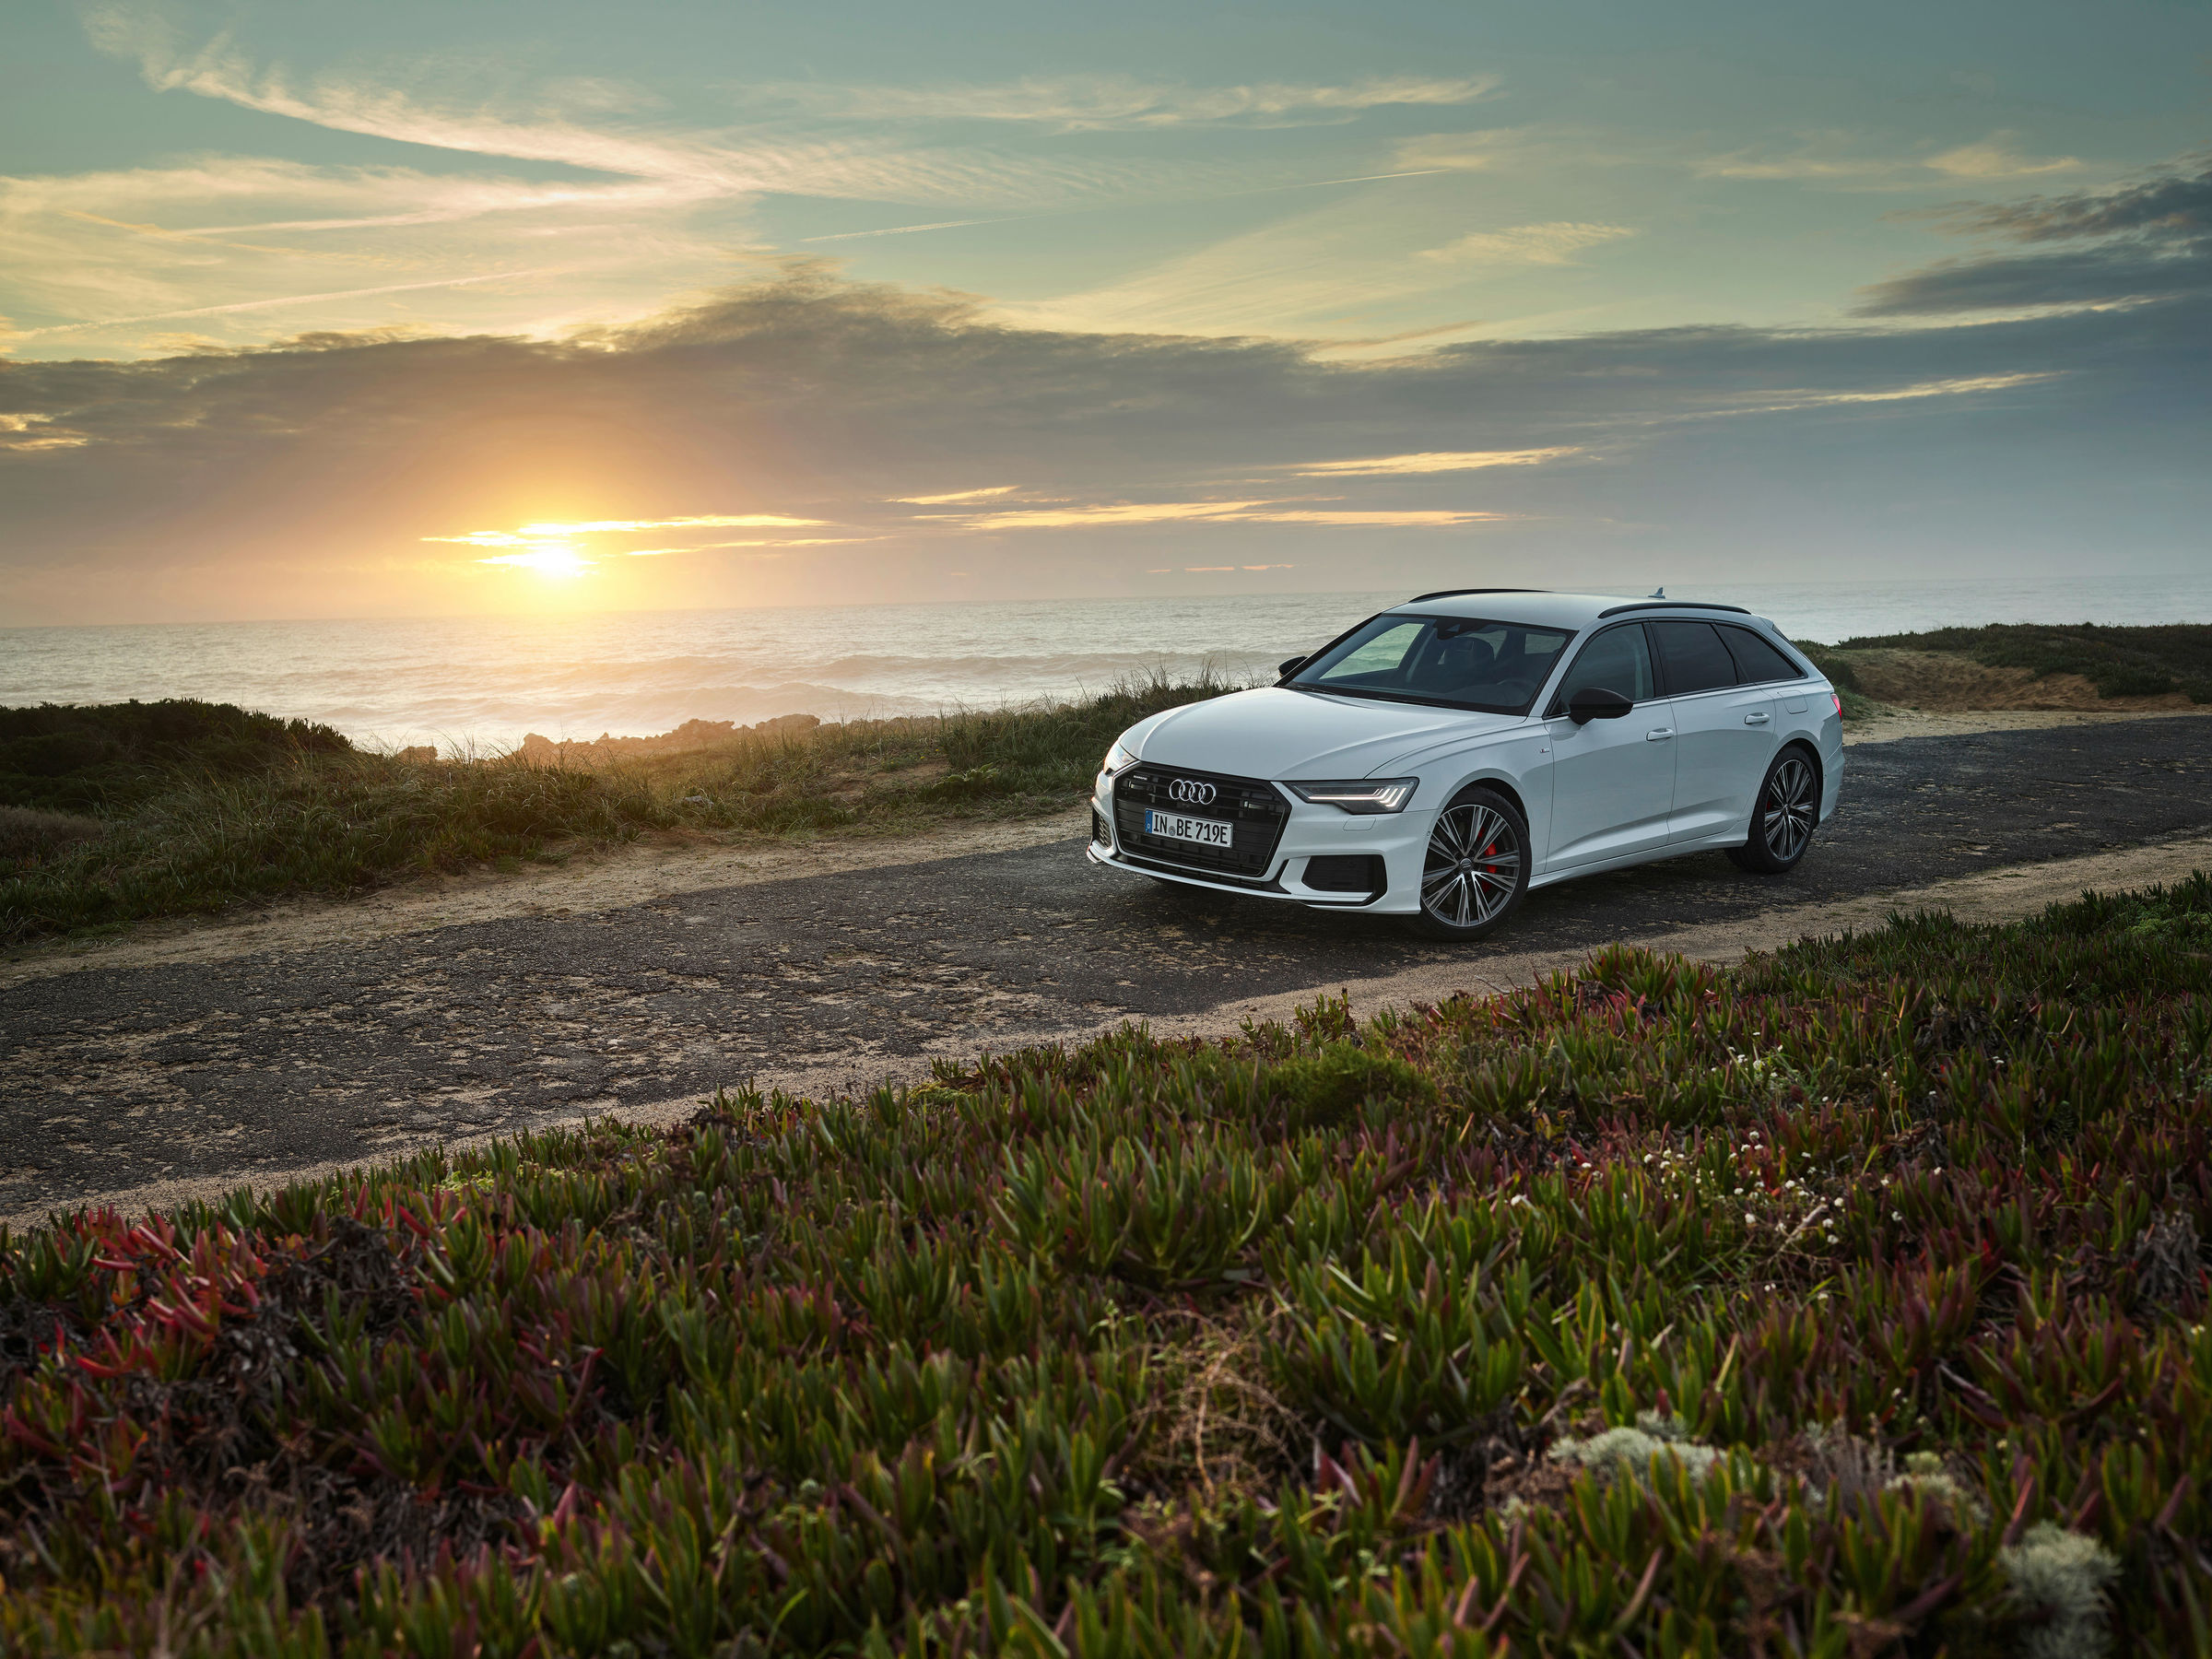 Audi full-size station wagon now as a plug-in hybrid: the new A6 Avant TFSI e quattro - Image 8